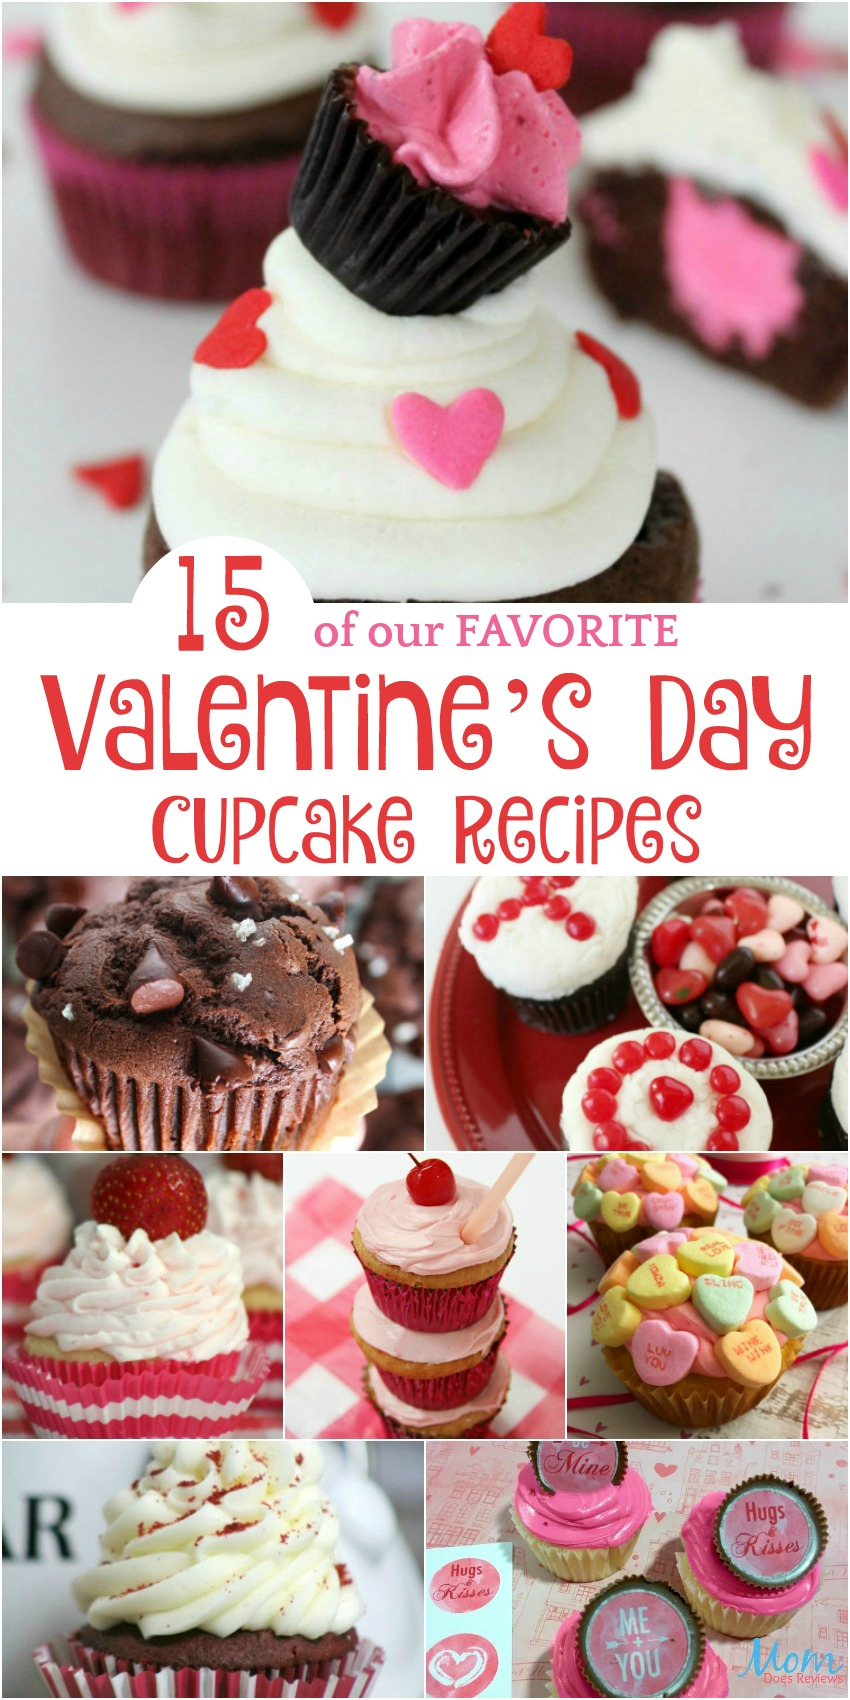 15 of our FAVORITE Valentine's Day Cupcake Recipes #Sweet2019 #sweets #cupcakes #desserts #valentinesday